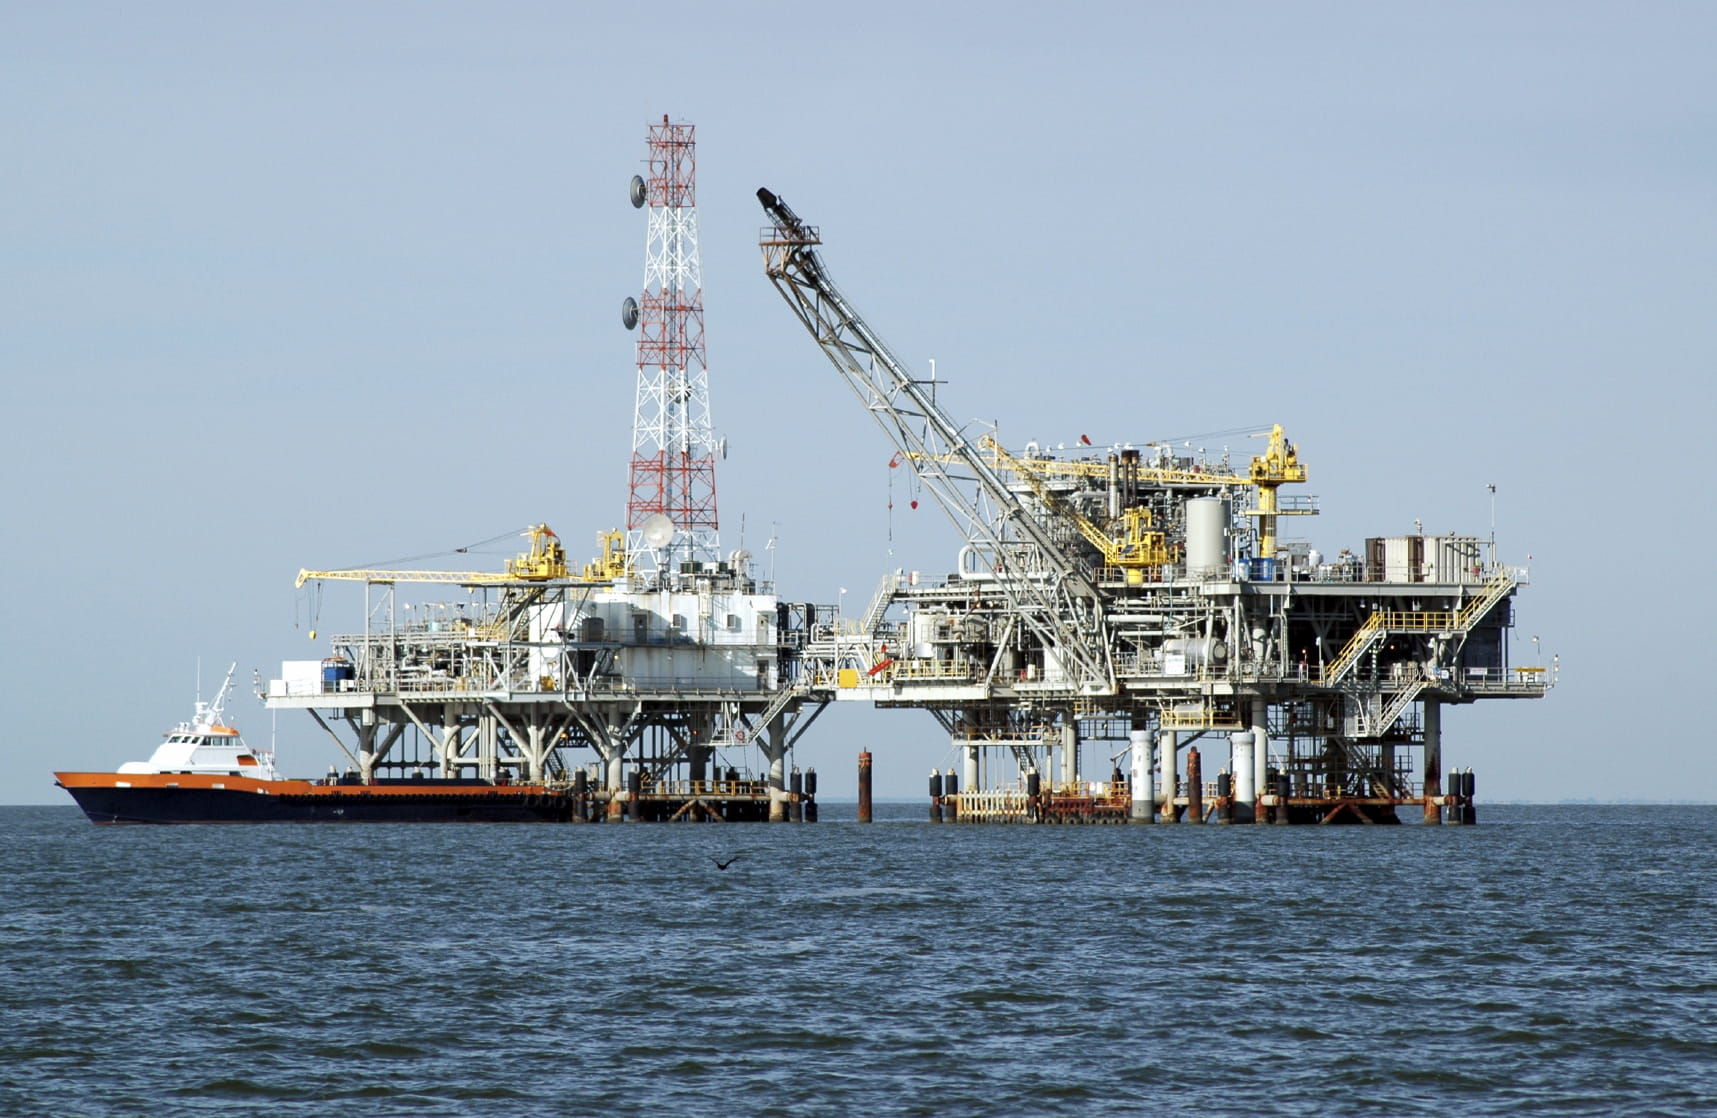 case study the oil rig The gulf oil spill is recognized 2010 explosion and sinking of the deepwater horizon oil rig in the gulf in the case of the deepwater horizon oil spill.